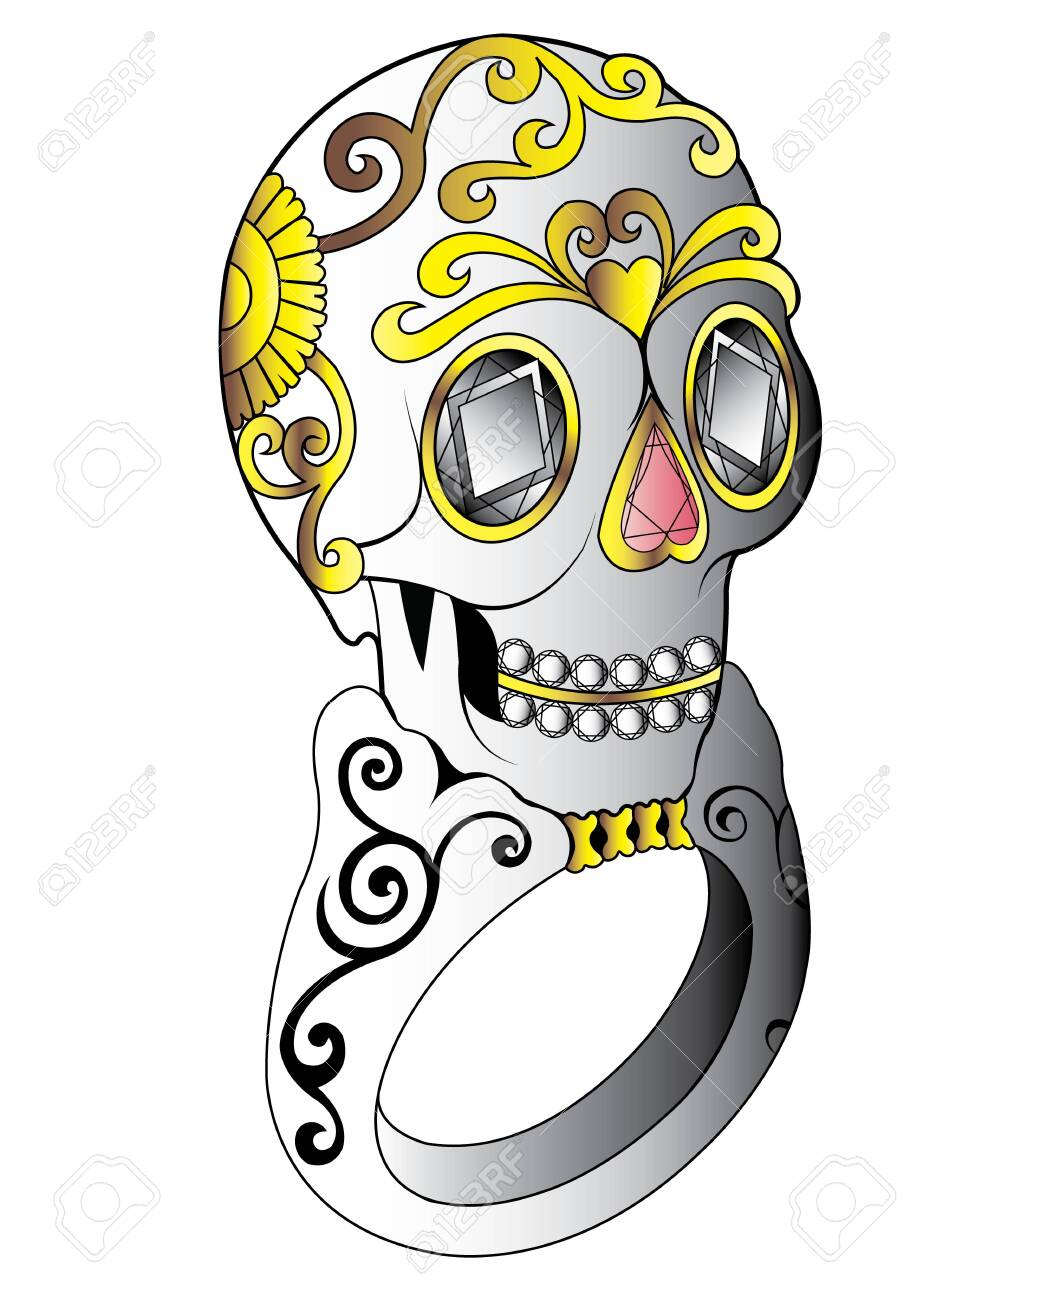 Jewelry Design Sugar Skull Ring. Hand drawing and painting on paper. - 144041070